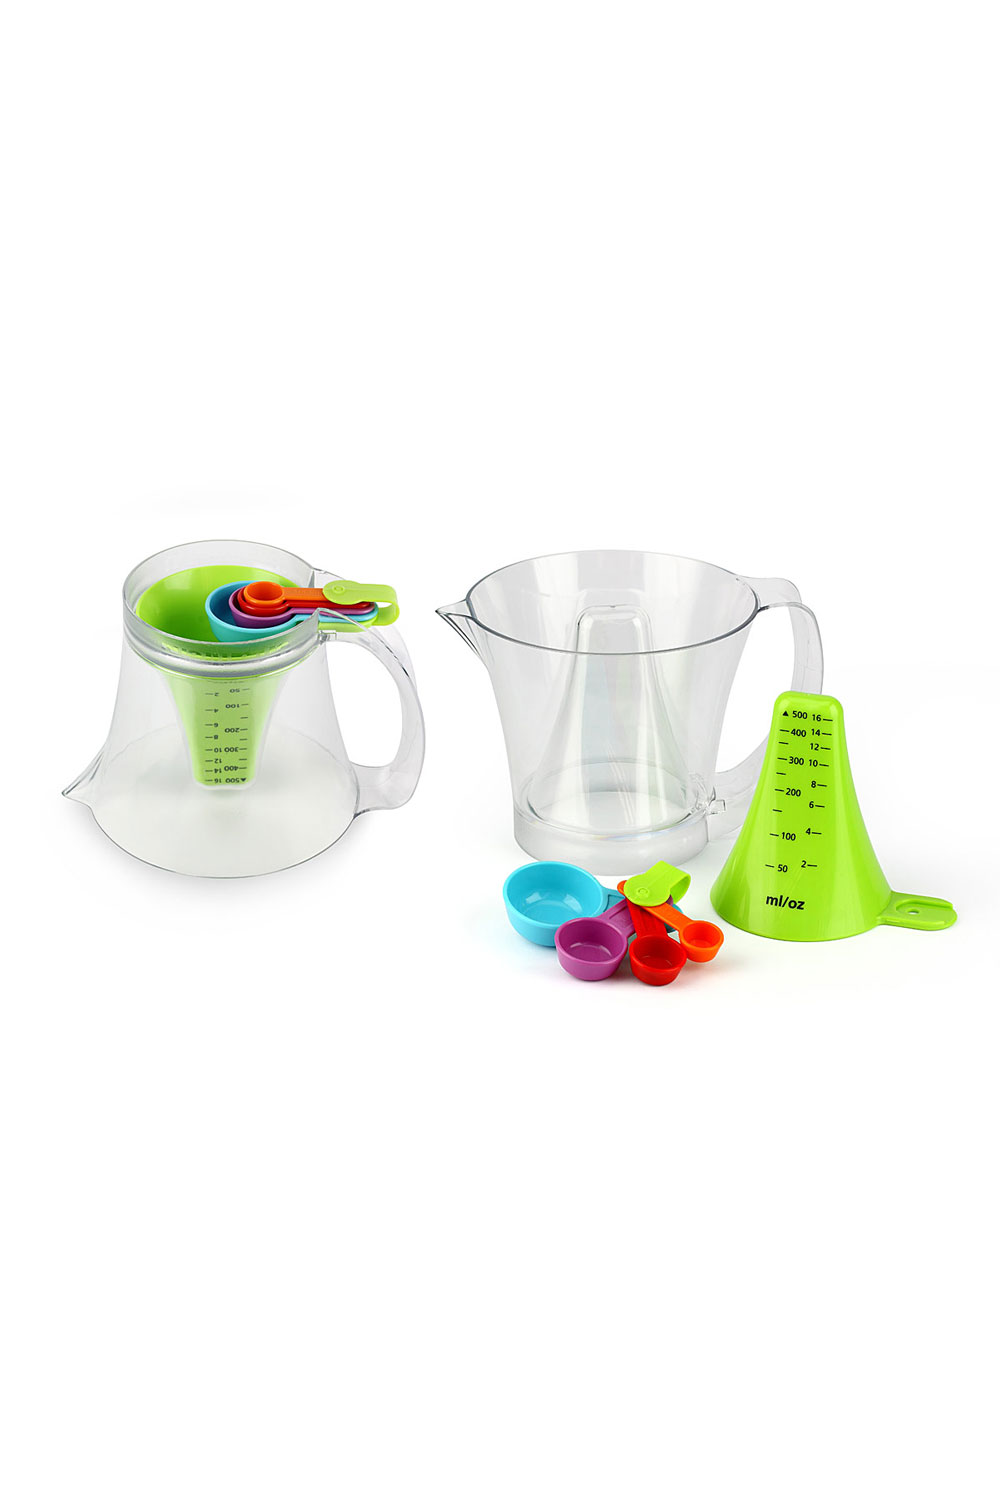 Reversible Measuring Cup and Spoon Set